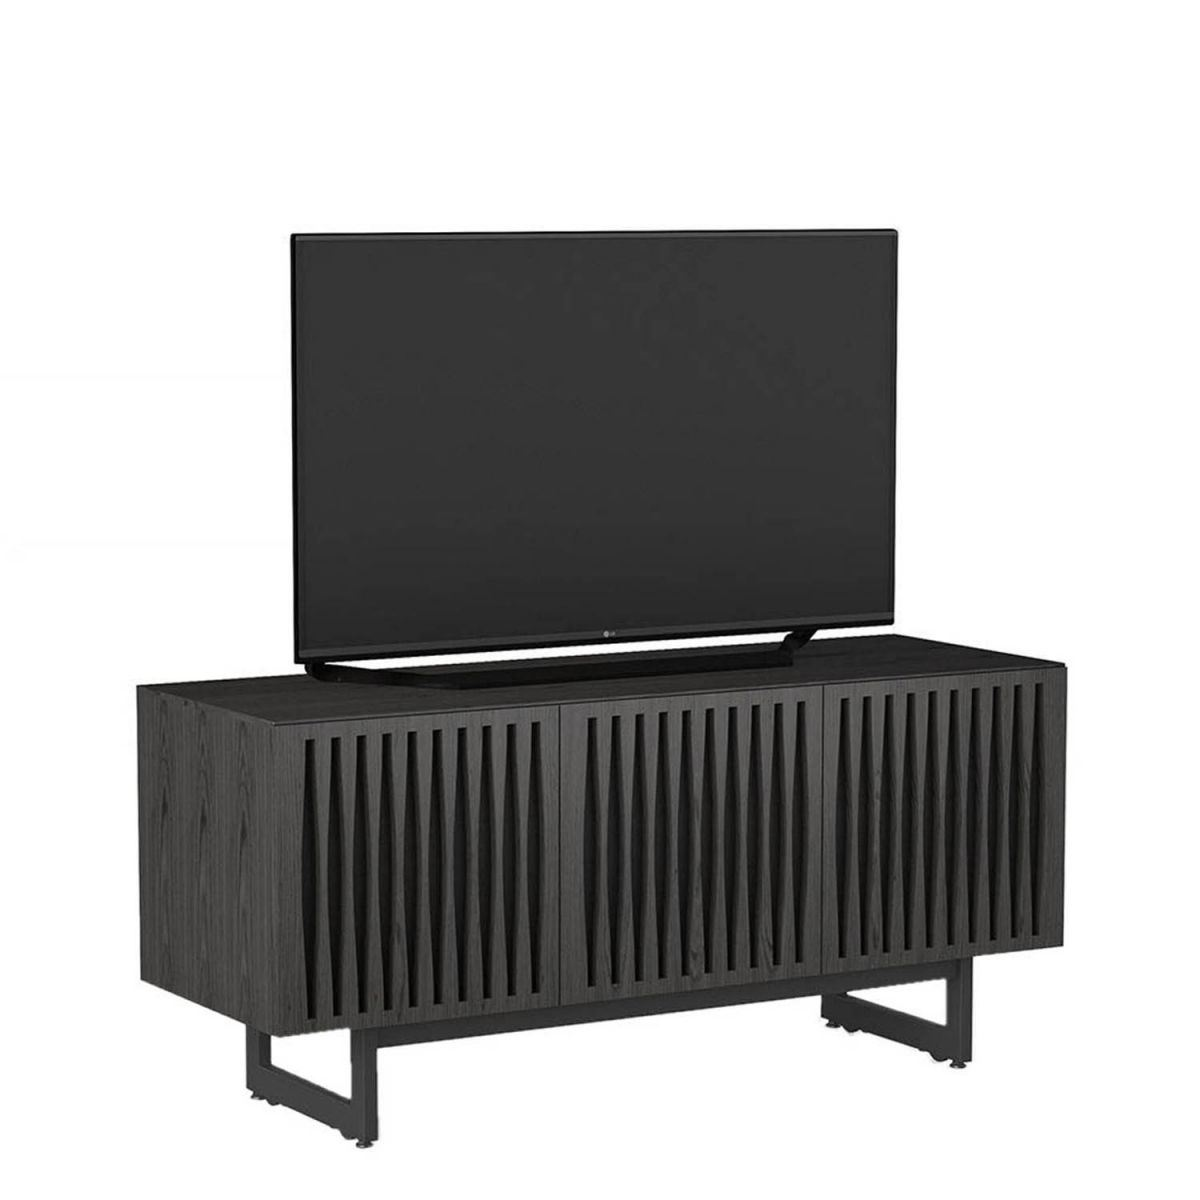 Picture of Elements 8777 Media Cabinet